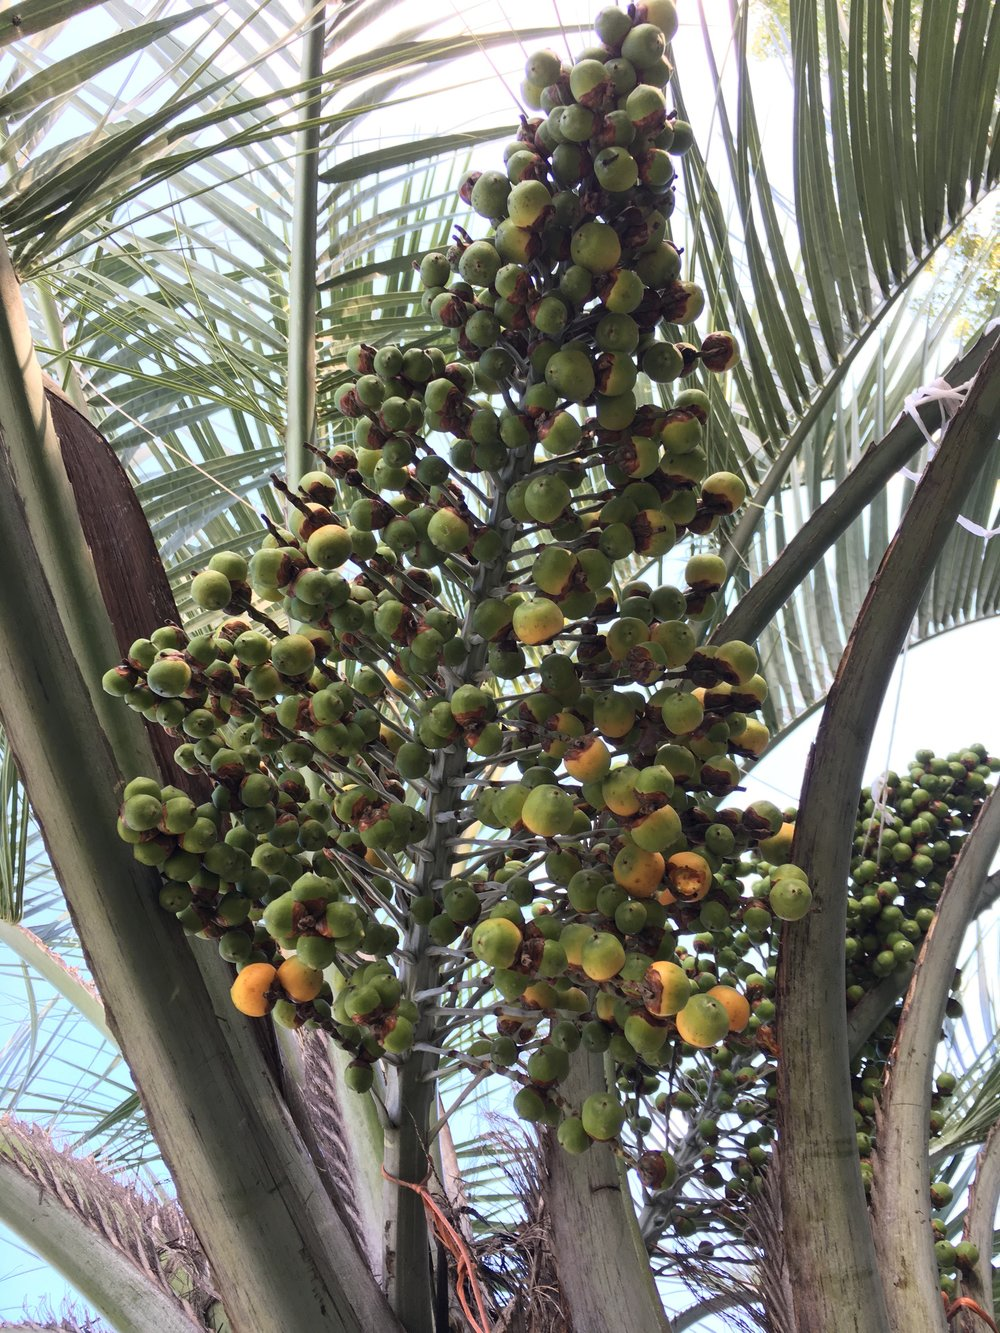 Mule Palm seeds starting to ripen.